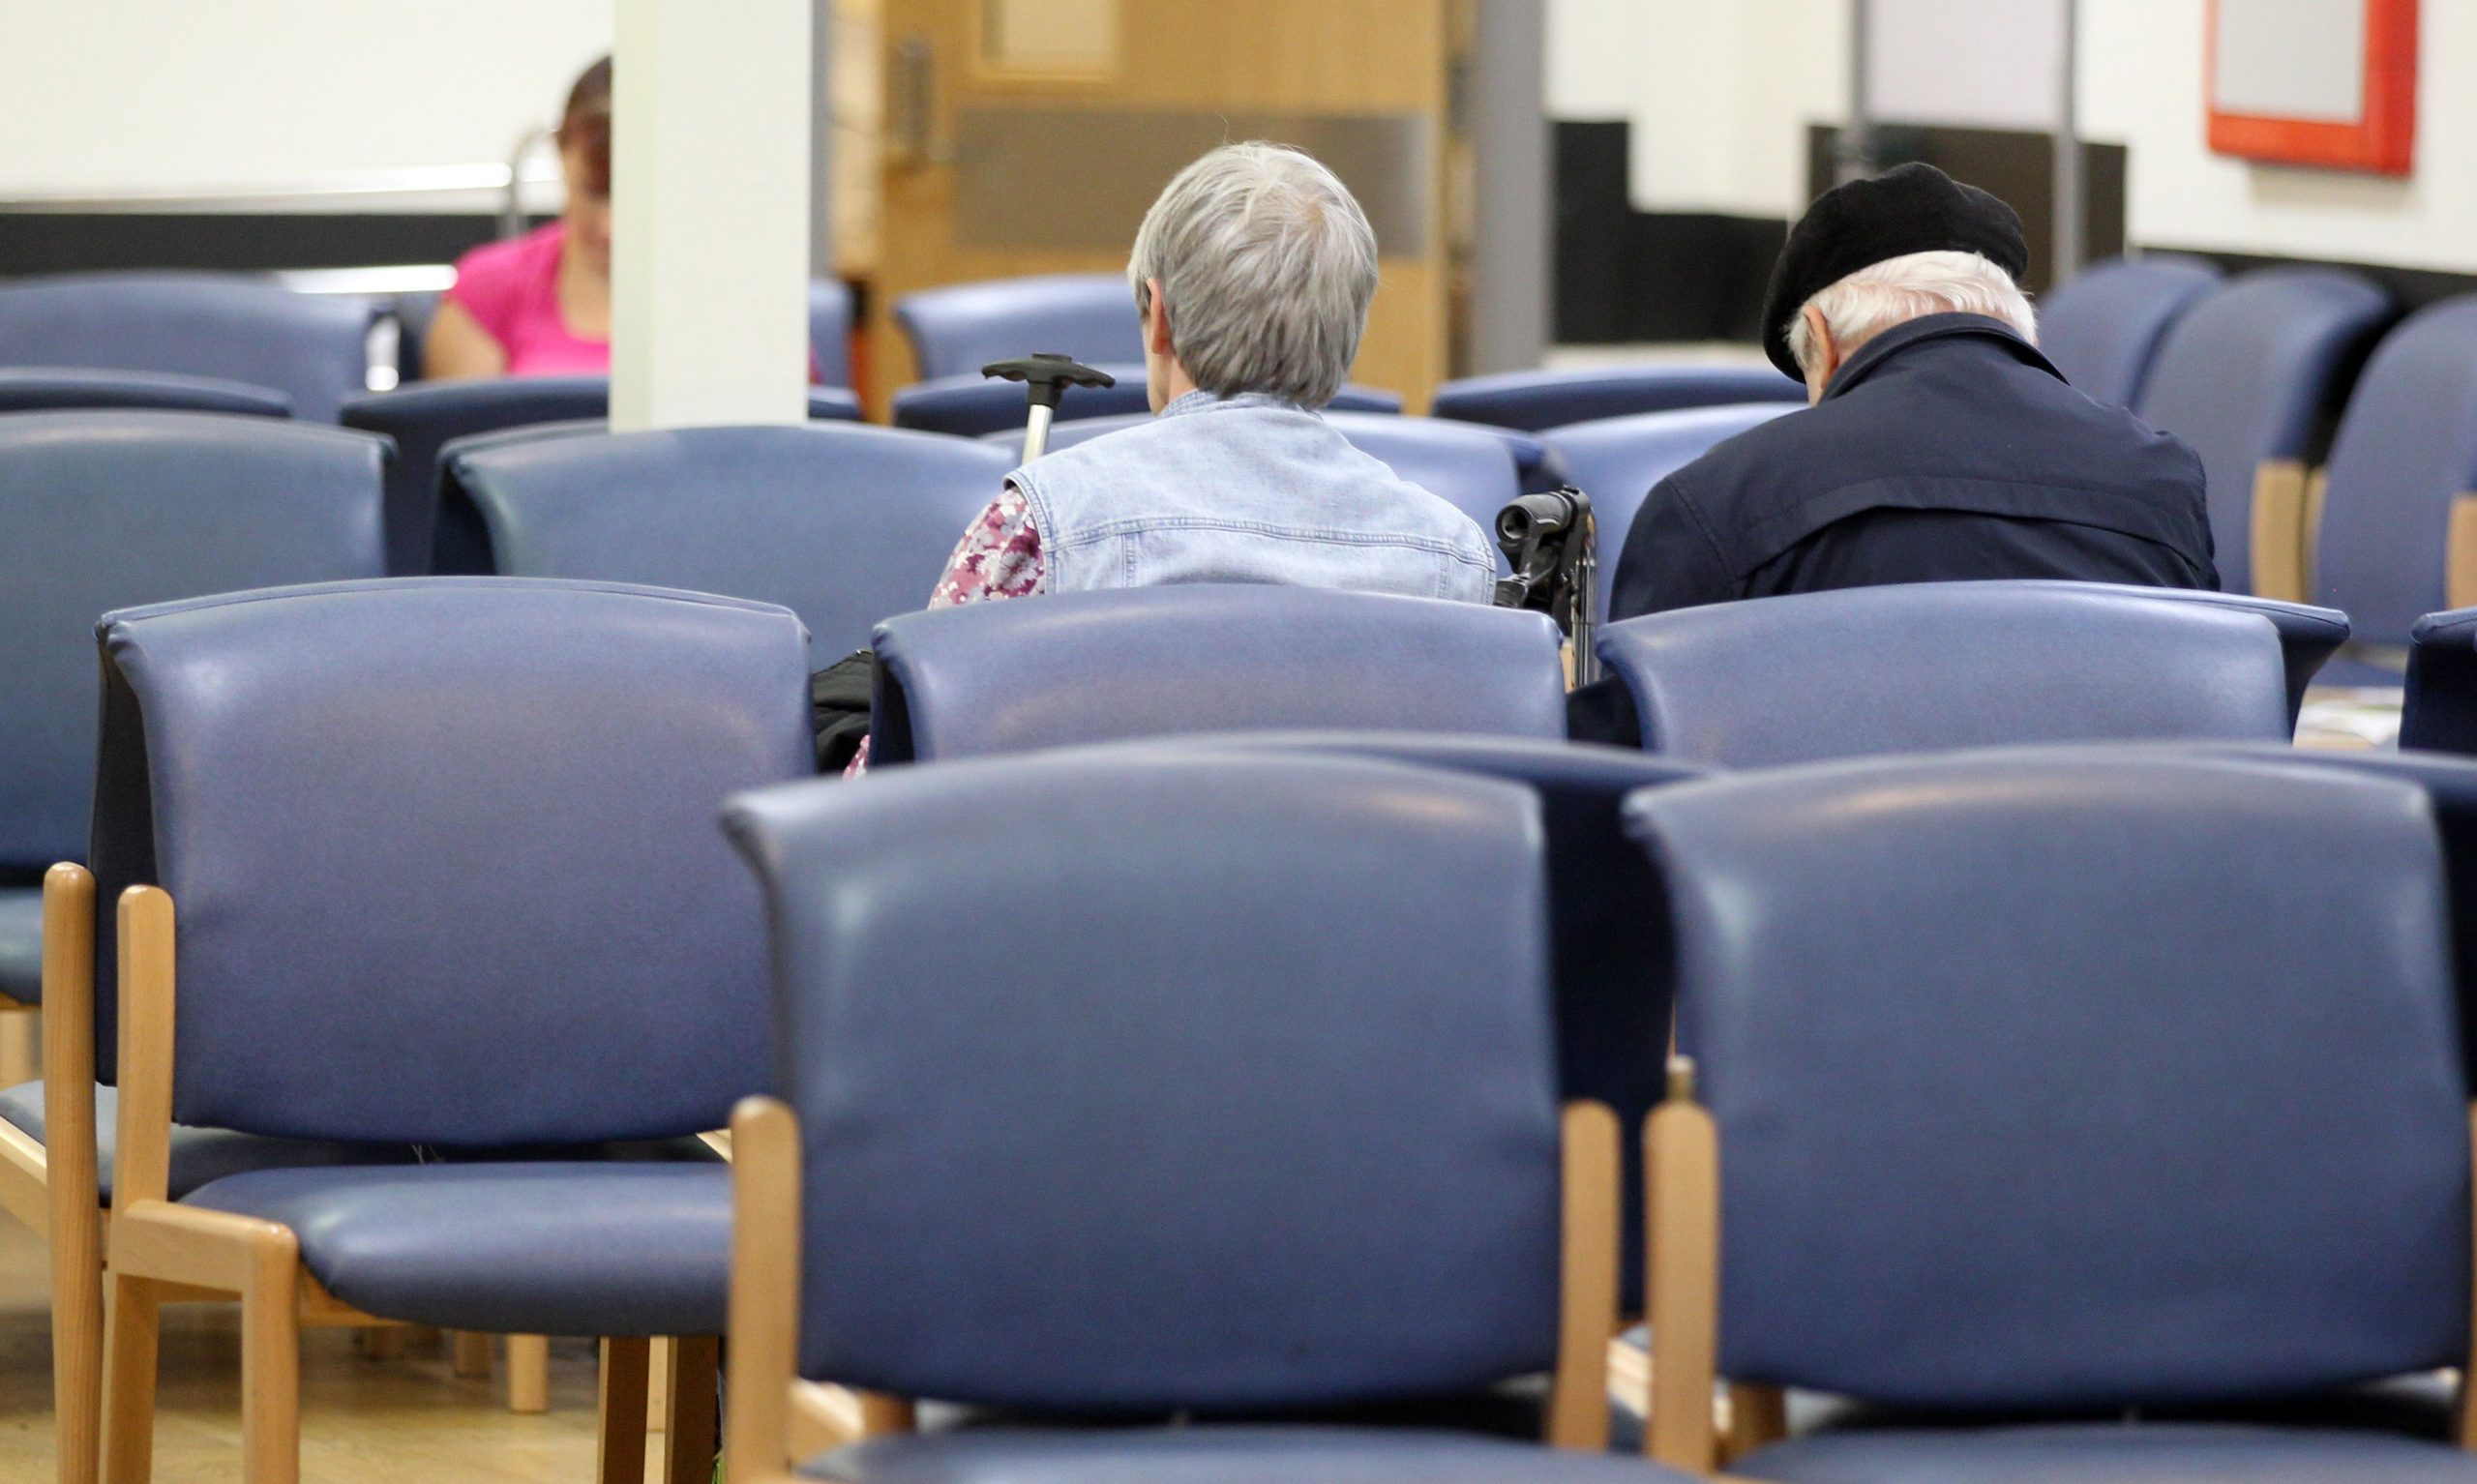 Read more about the article England's NHS waiting list tops 5 million for first time